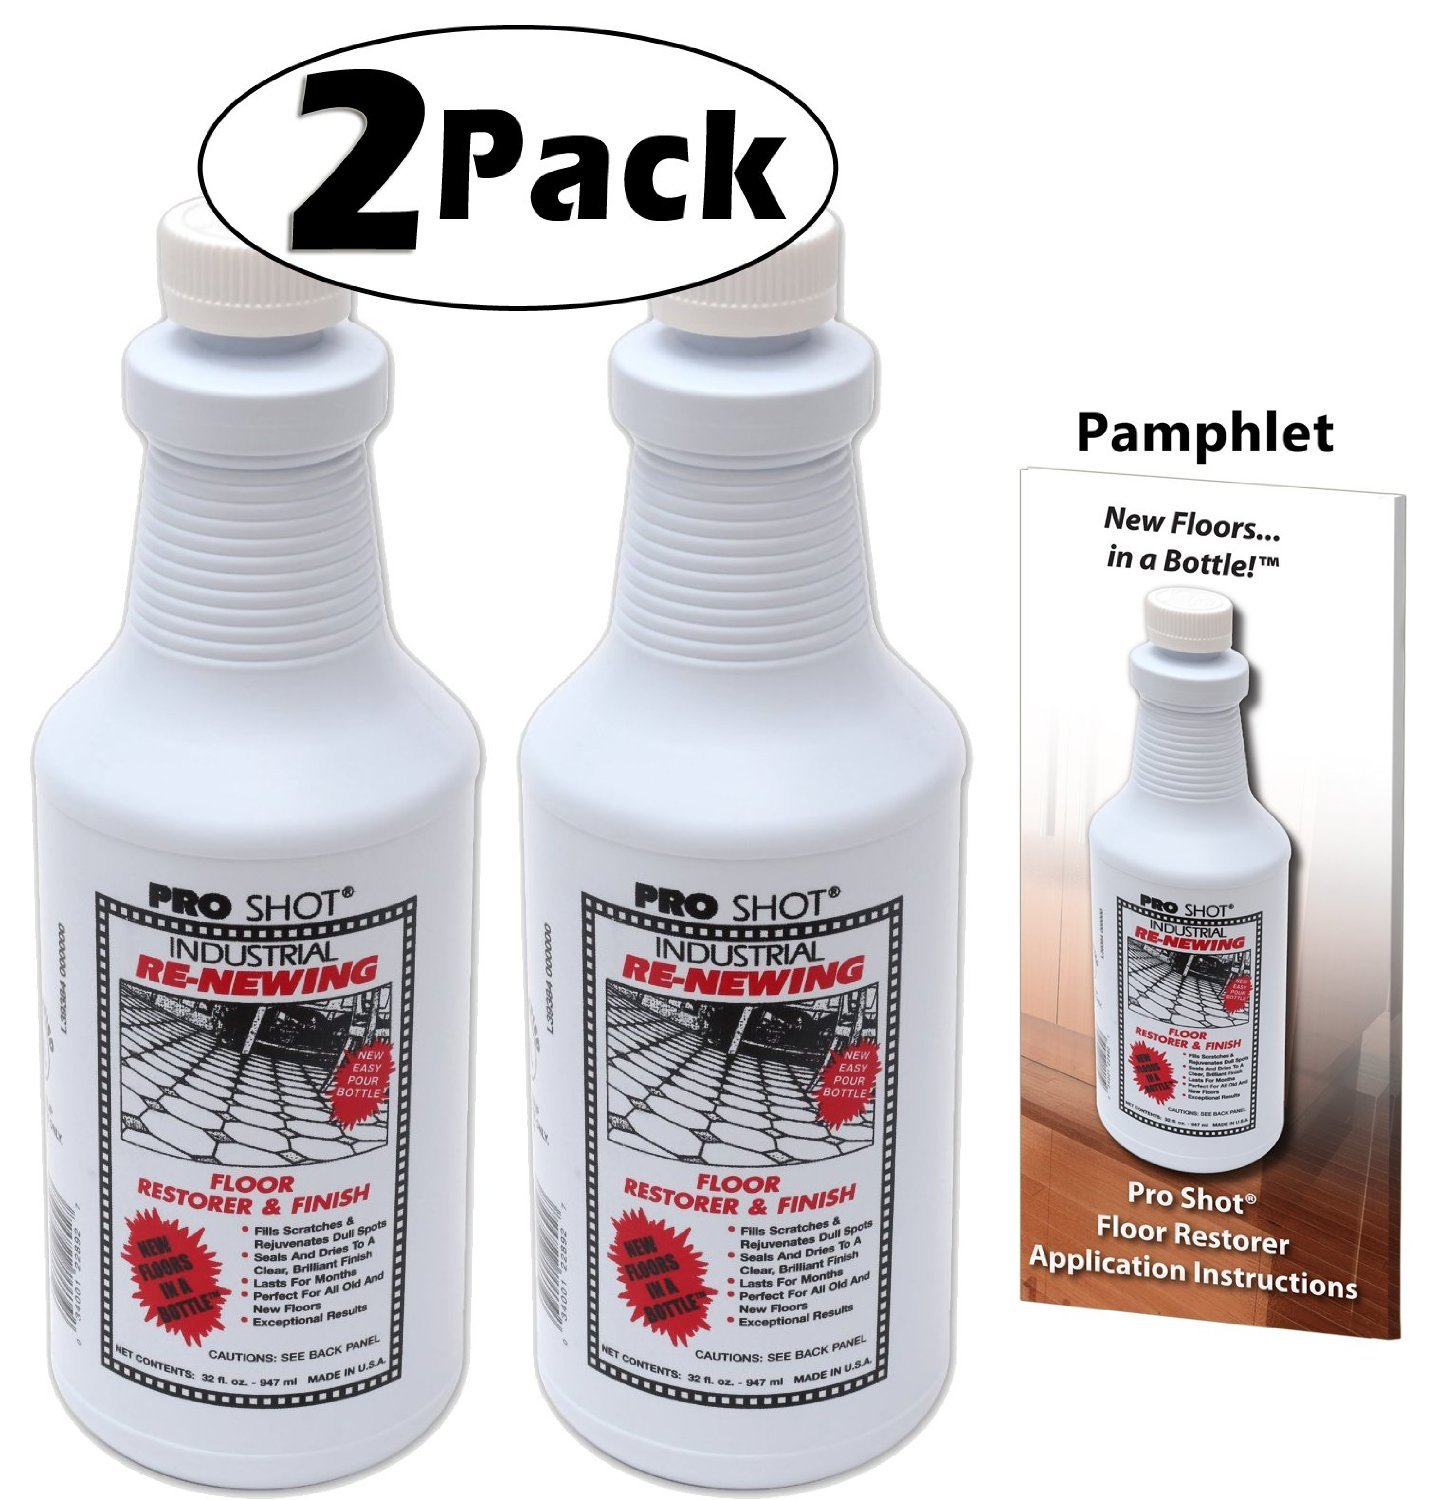 2 PACK Pro Shot Industrial Re-Newing Floor Restorer And Finish (64 oz. - 32 oz. each) Petrochemical-Free Formula by PRO SHOT